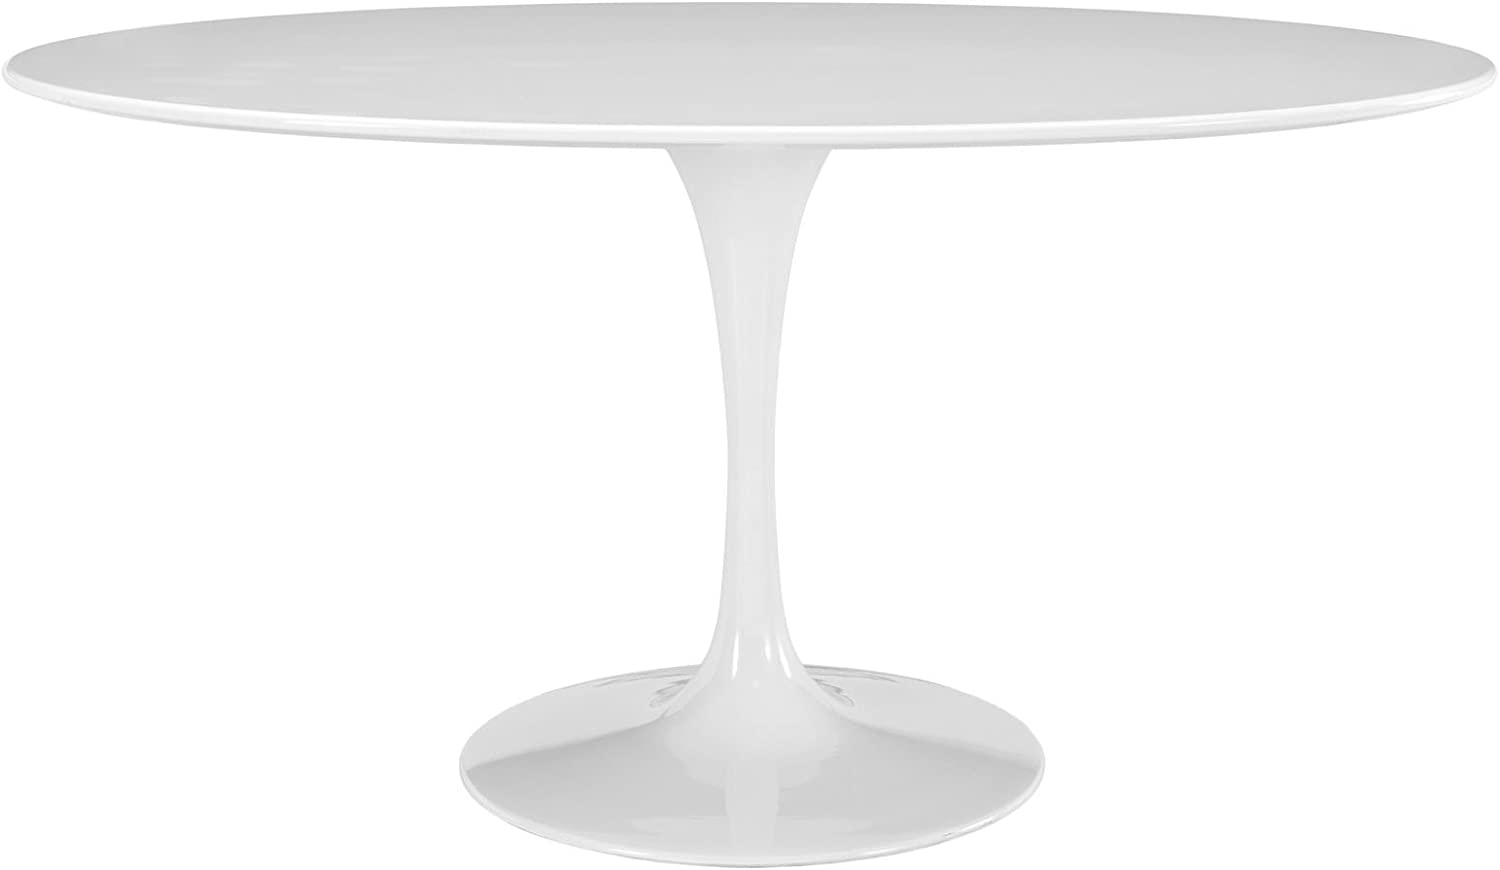 Modway Lippa 60 Mid-Century Modern Kitchen and Dining Table with Oval Top and Pedestal Base in White